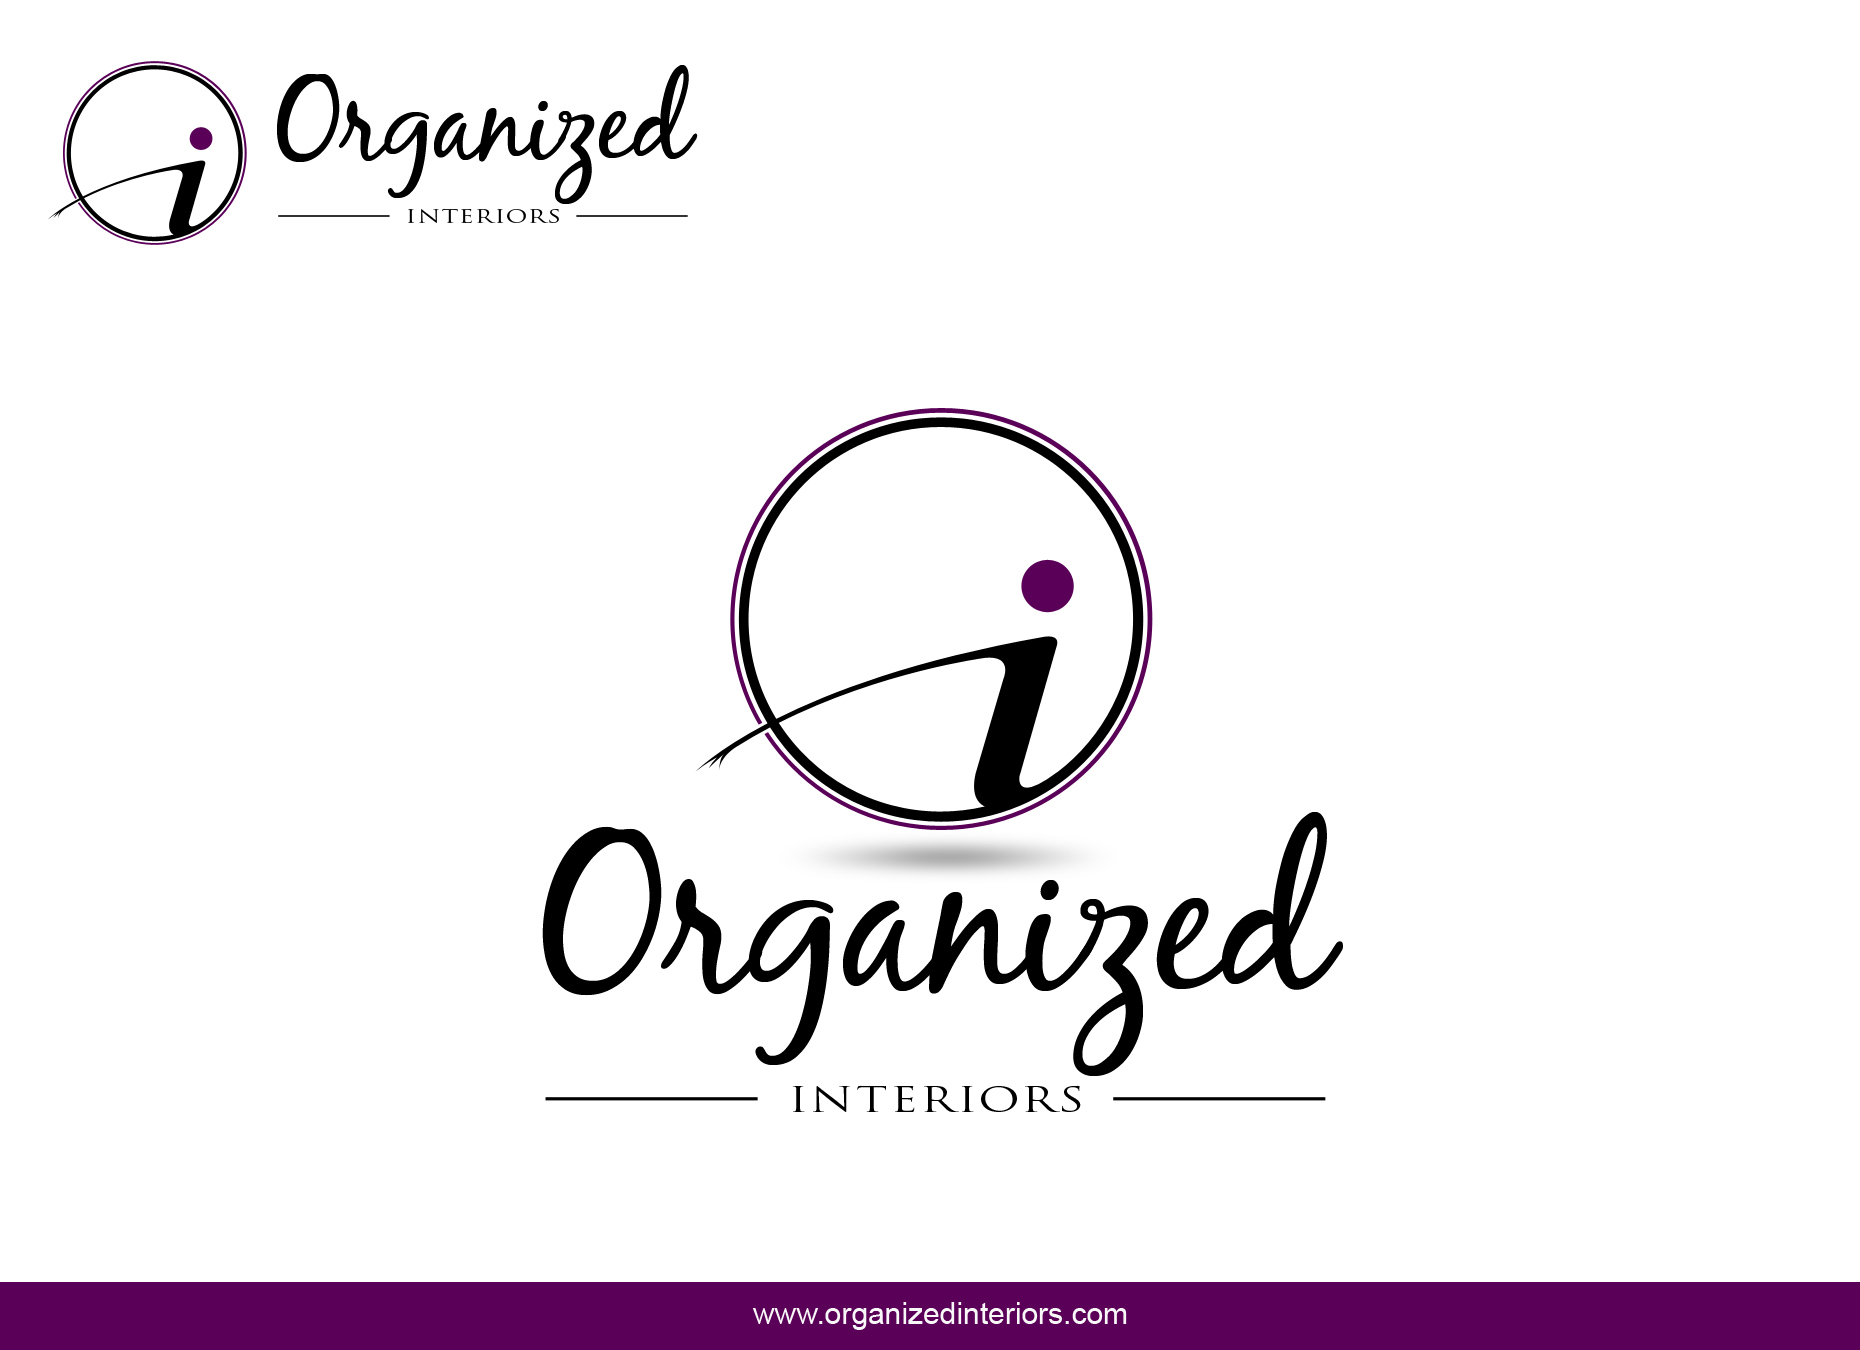 Logo Design by omARTist - Entry No. 168 in the Logo Design Contest Imaginative Logo Design for Organized Interiors.